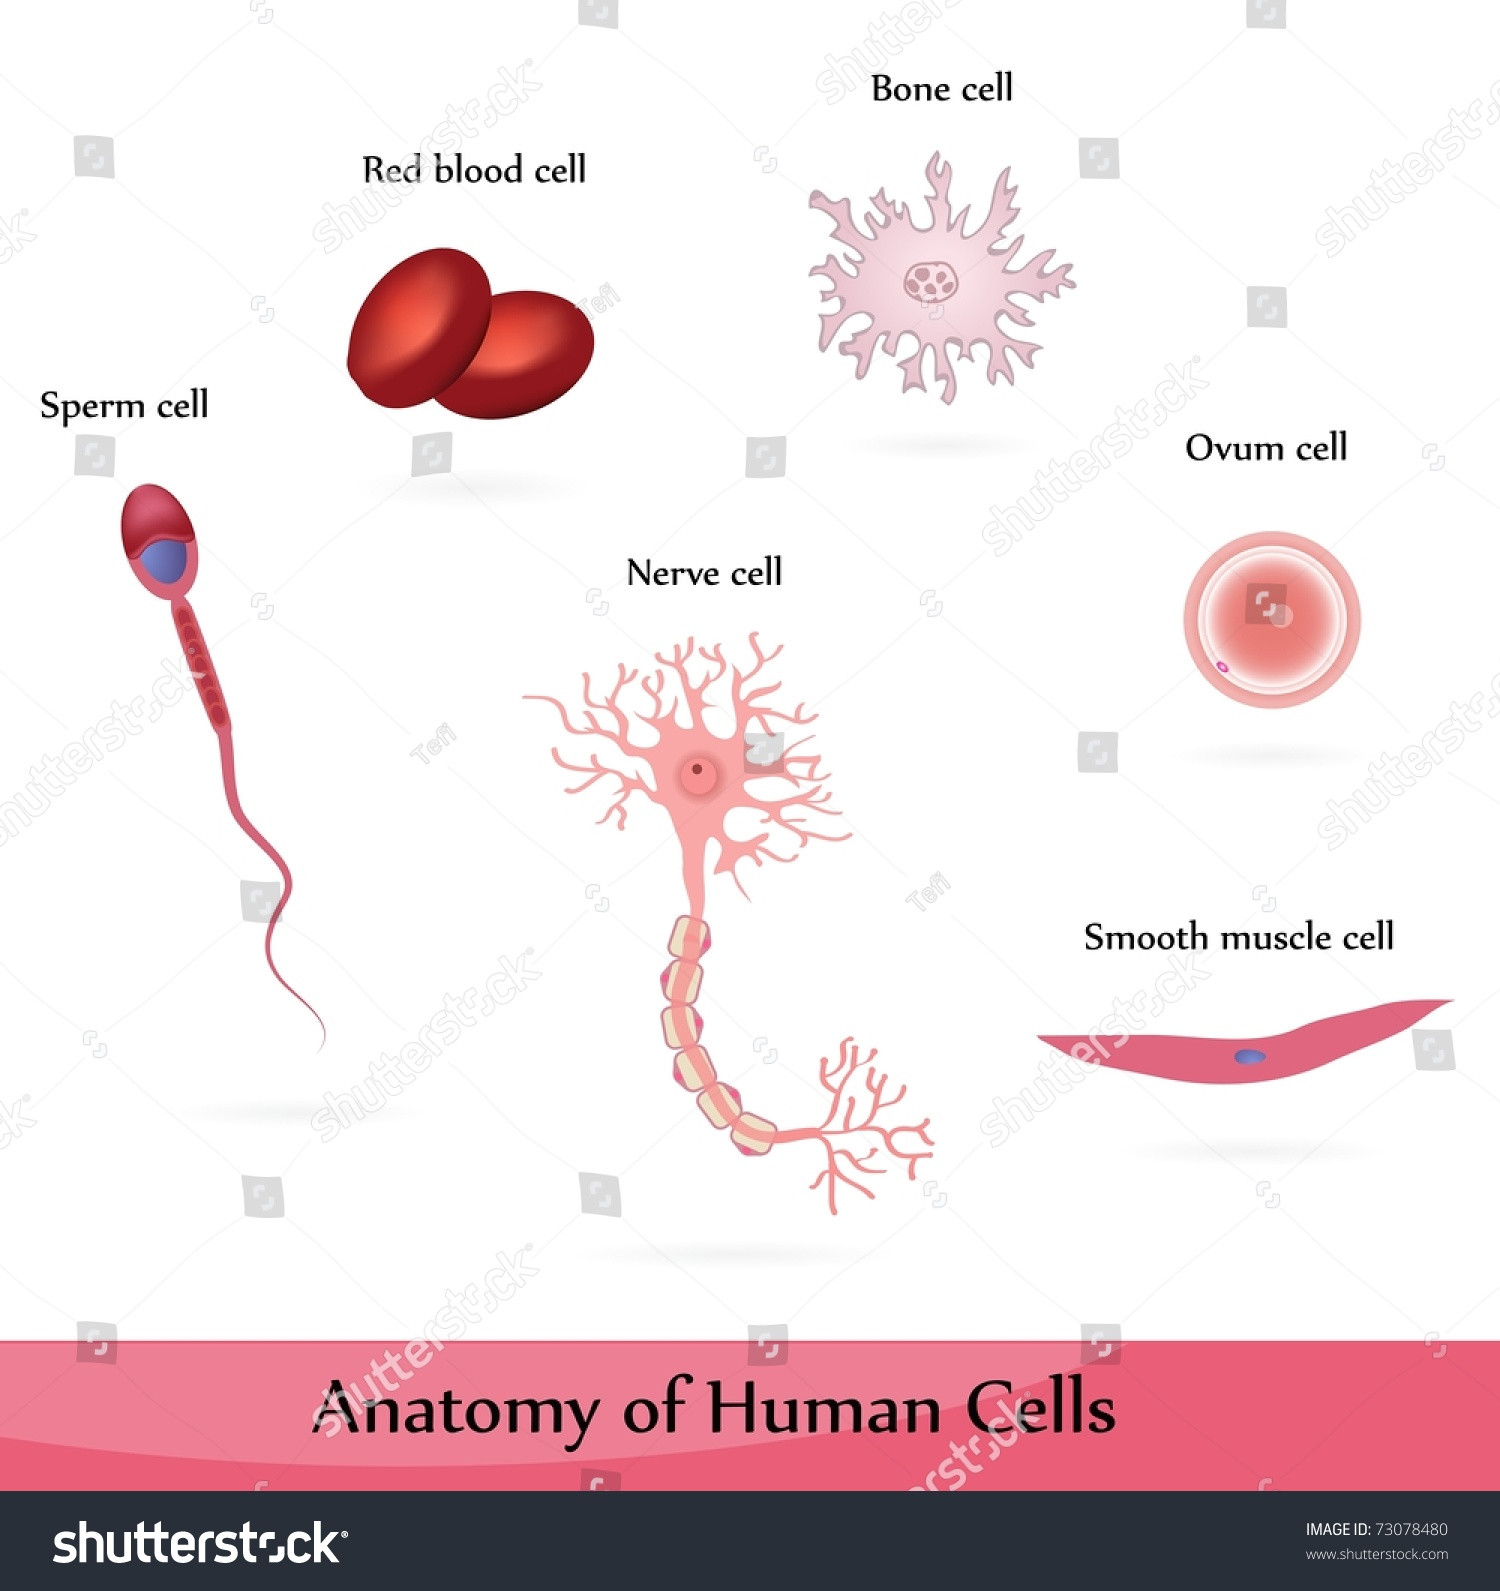 White and red blood cells in sperm